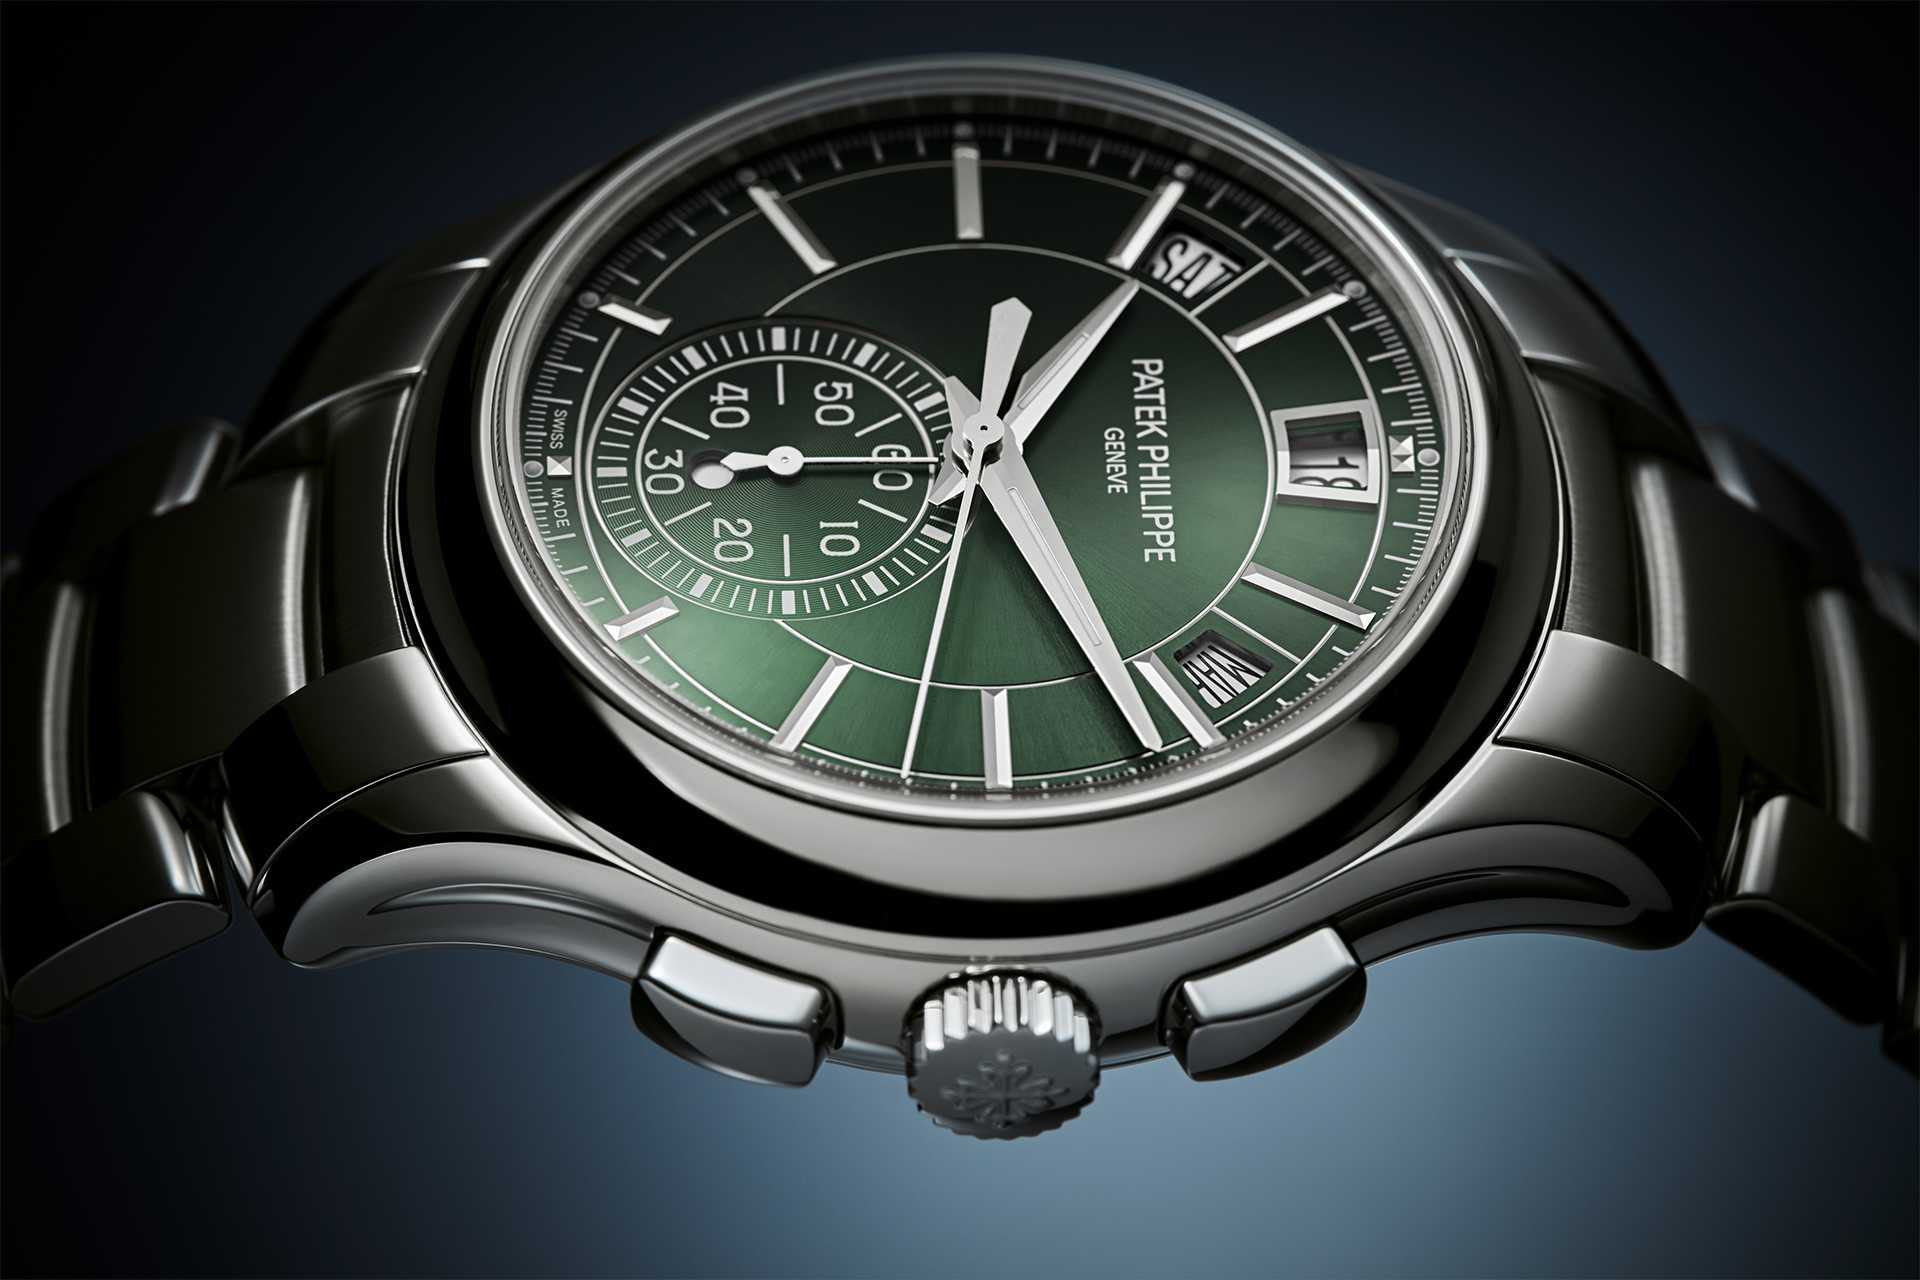 Patek Philippe self-winding flyback chronograph with annual calendar Ref. 5905/1A-001